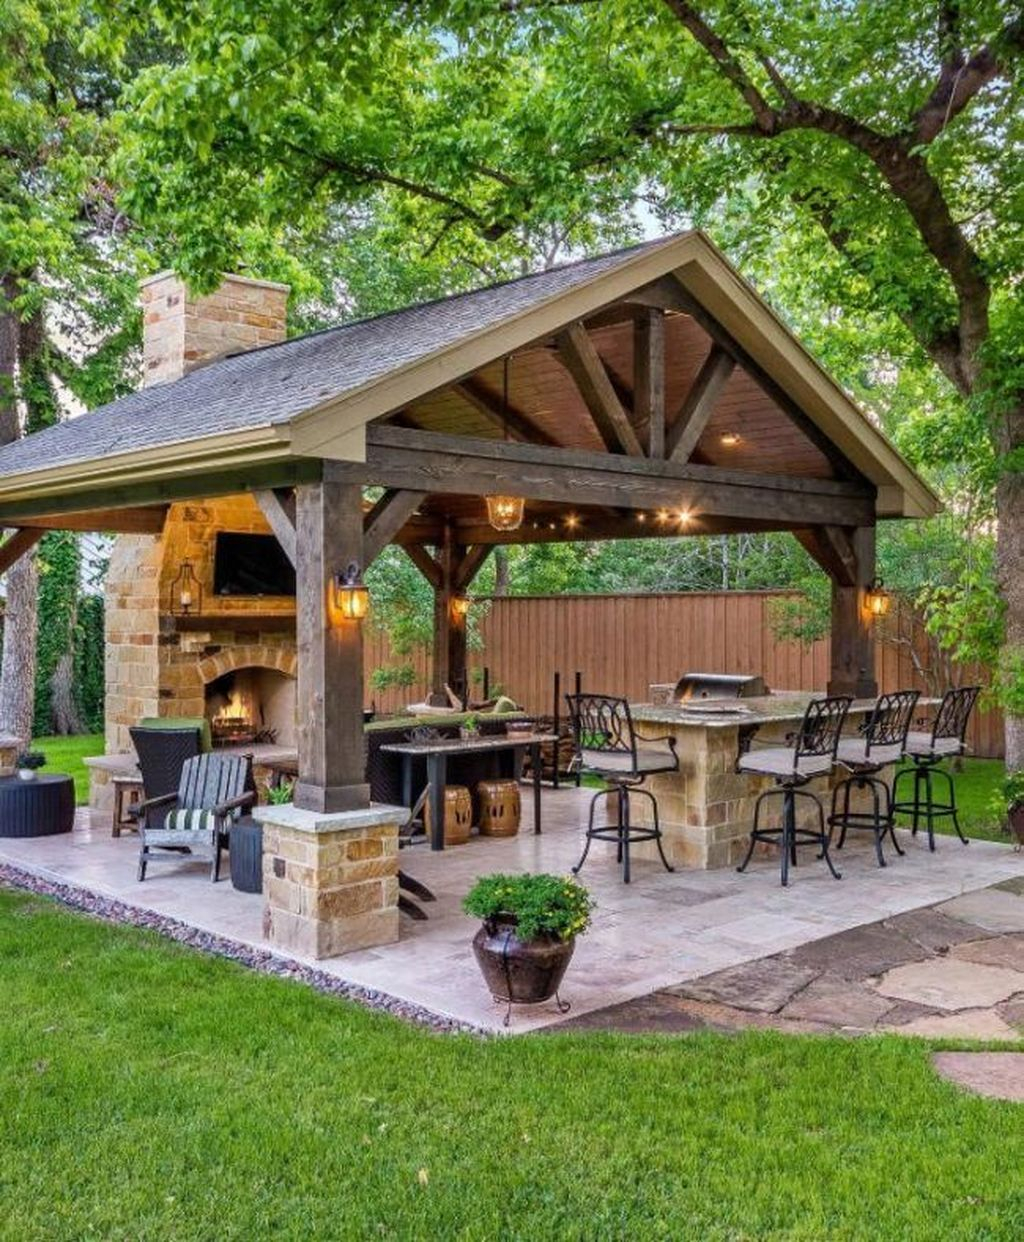 Amazing Traditional Patio Setups For Your Backyard34